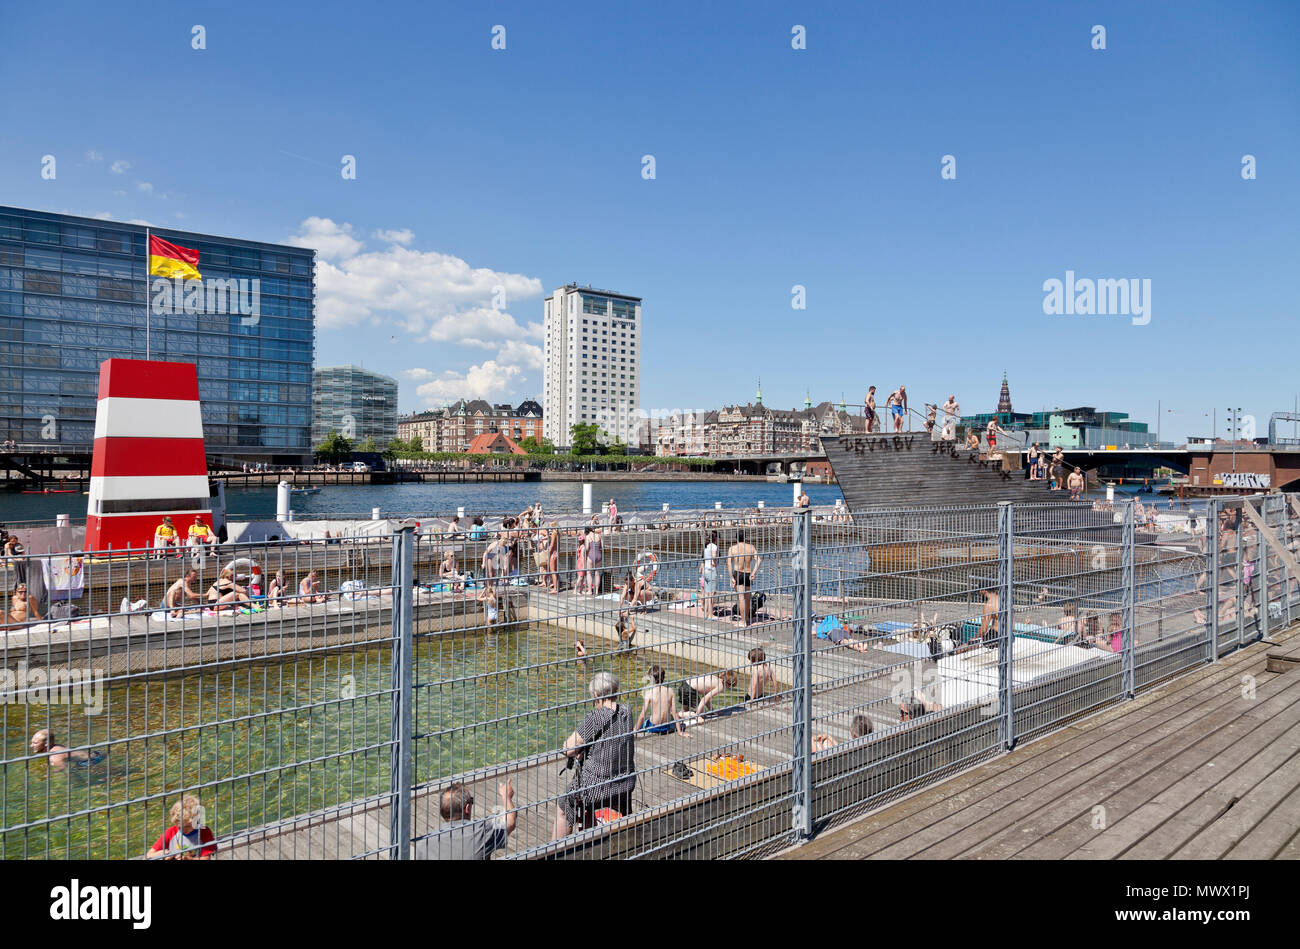 Copenhagen, Denmark. 2nd June, 2018. On the second day of the harbour bath season that began yesterday thousands of Copenhageners, tourists and visitors enjoy another warm and sunny summer day of the long-lasting and early heat wave that made May the sunniest and warmest on record in Denmark, here in the Islands Brygge Harbour Bath in the inner harbour. In Denmark a summer day is any day on which temperatures top 25 degrees Celsius - until now there have been 19 of these - actually, on many days temperatures have been close to 30 degrees. Credit: Niels Quist / Alamy Live News.Stock Photo